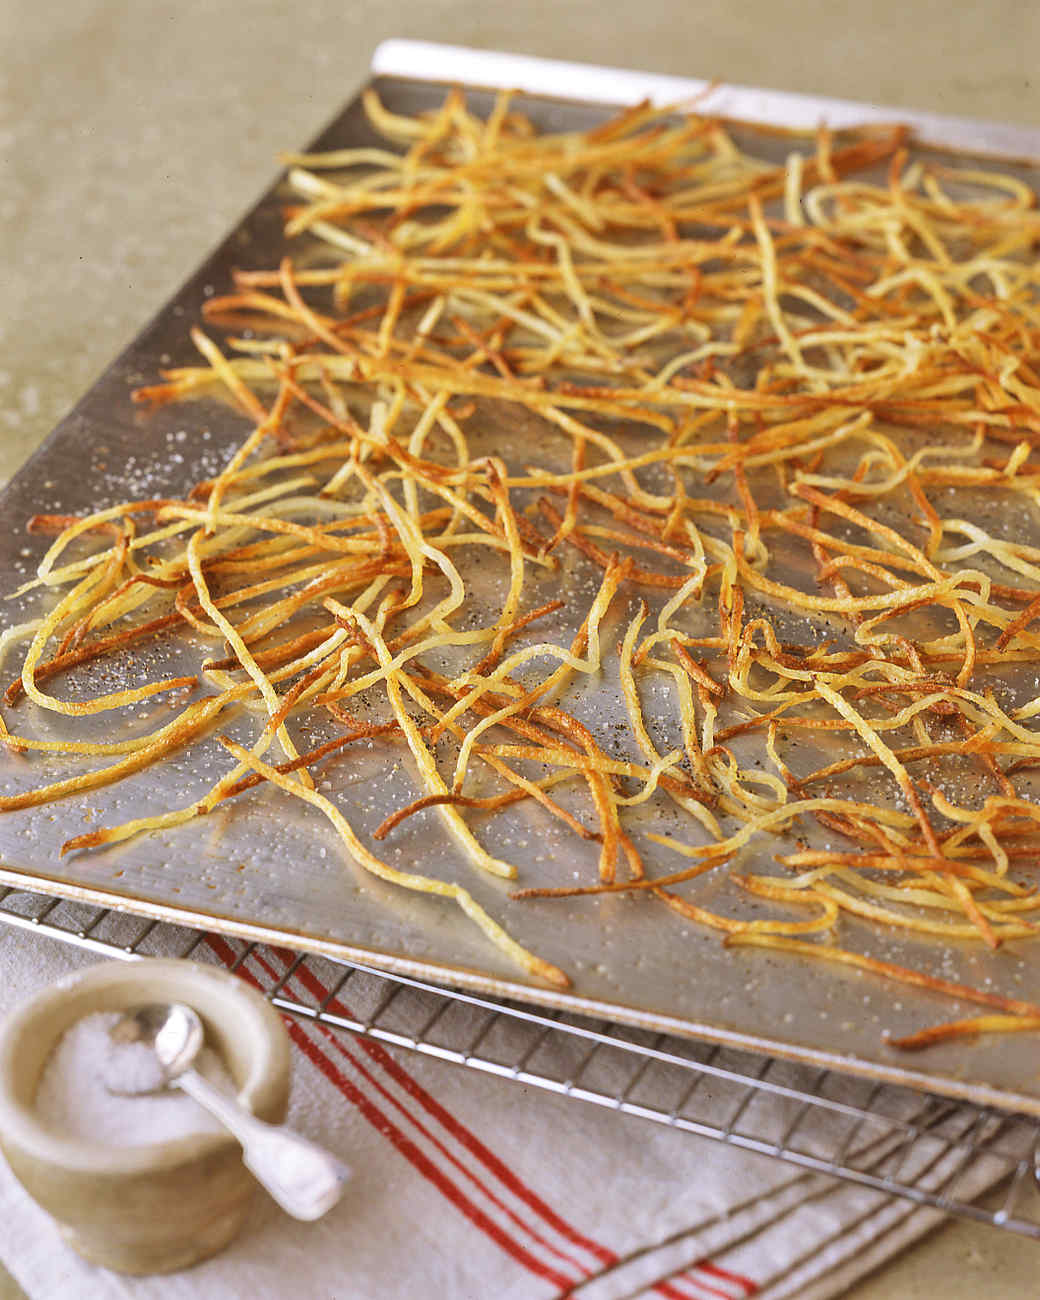 Matchstick Fries